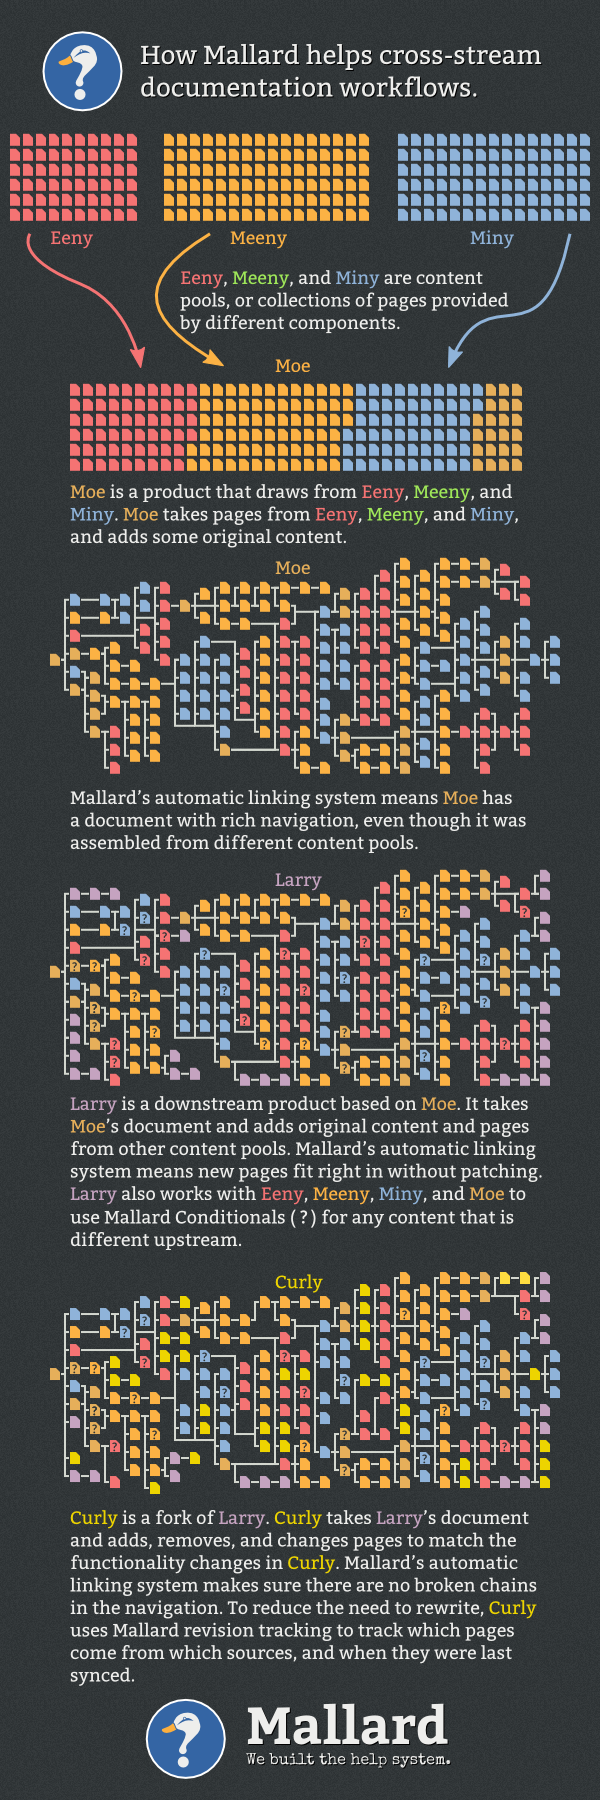 Infographic: How Mallard helps cross-stream documentation workflows